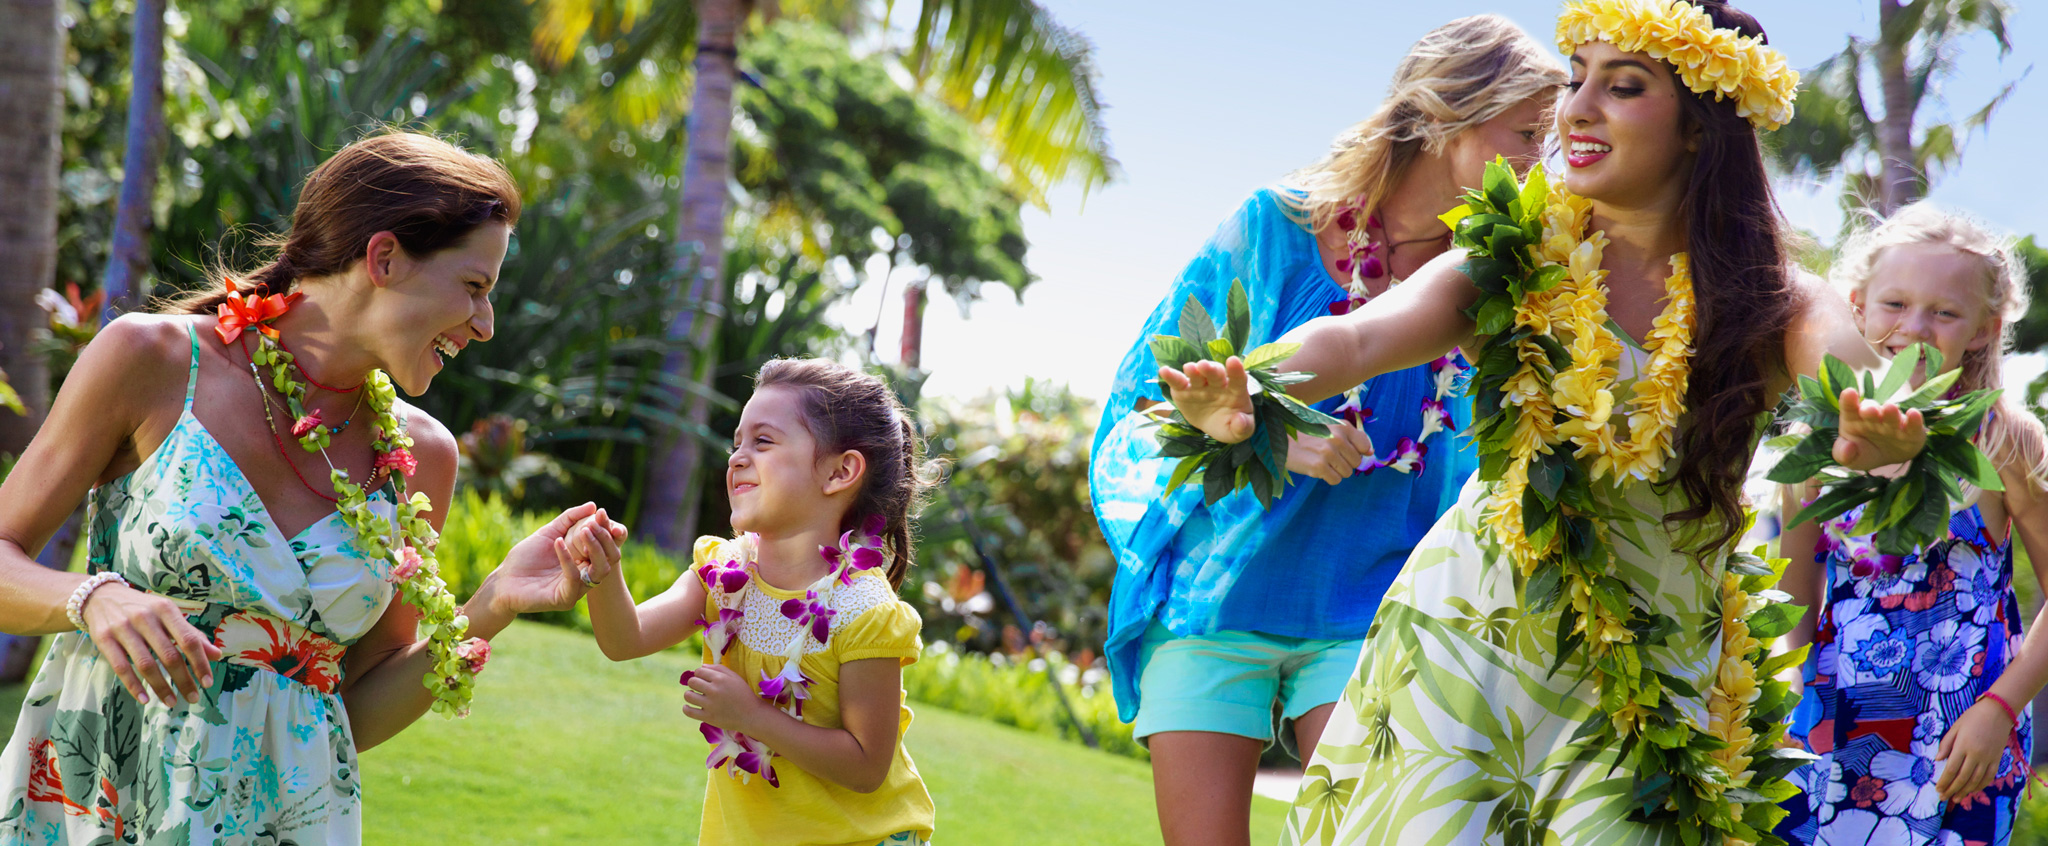 Two young girls and their mothers wearing flower leis follow along during a Hawaiian hula dancing lesson